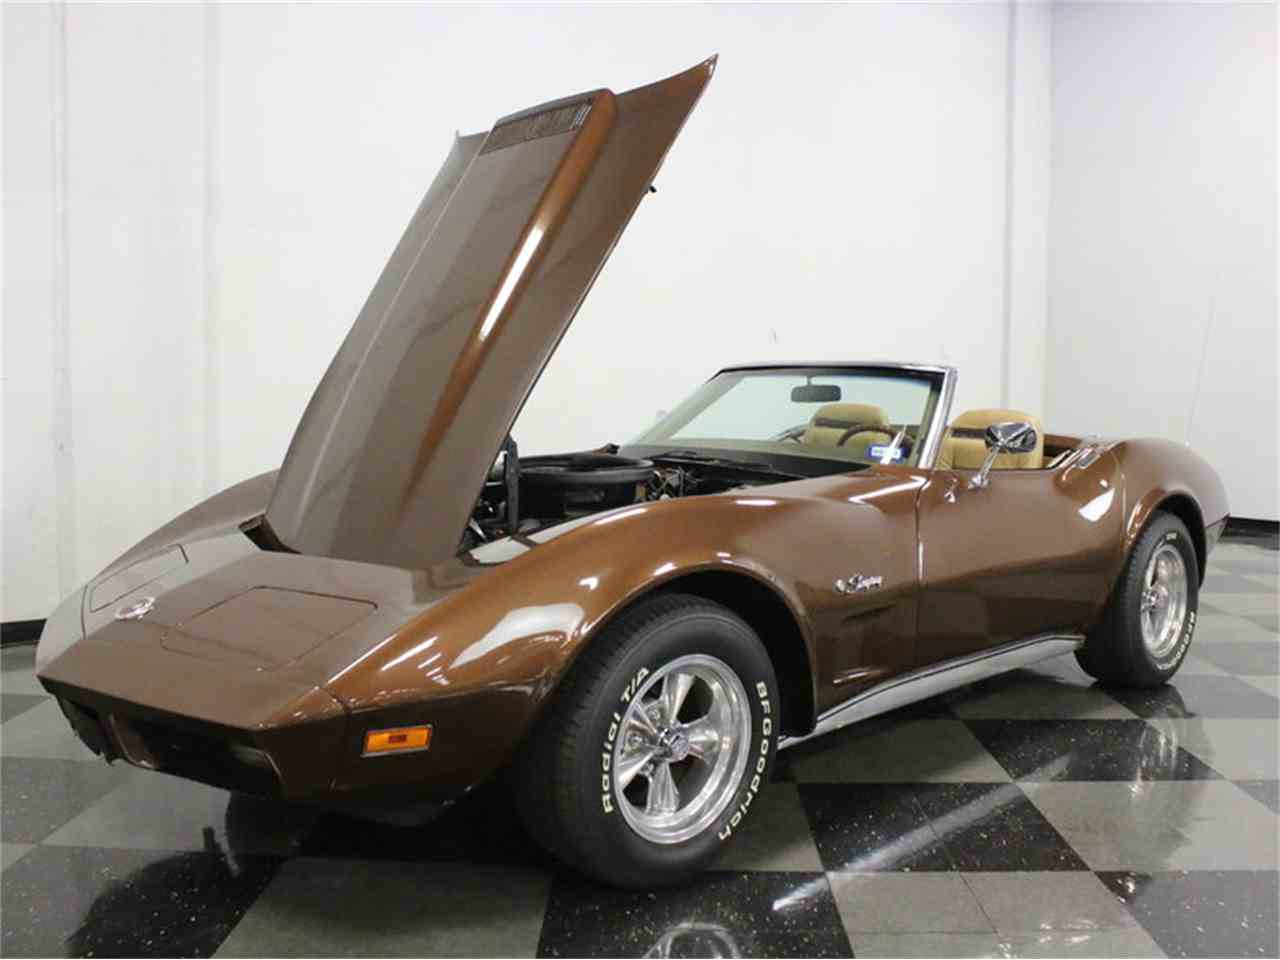 Large Picture of '74 Chevrolet Corvette located in Ft Worth Texas - $22,995.00 Offered by Streetside Classics - Dallas / Fort Worth - LBK6